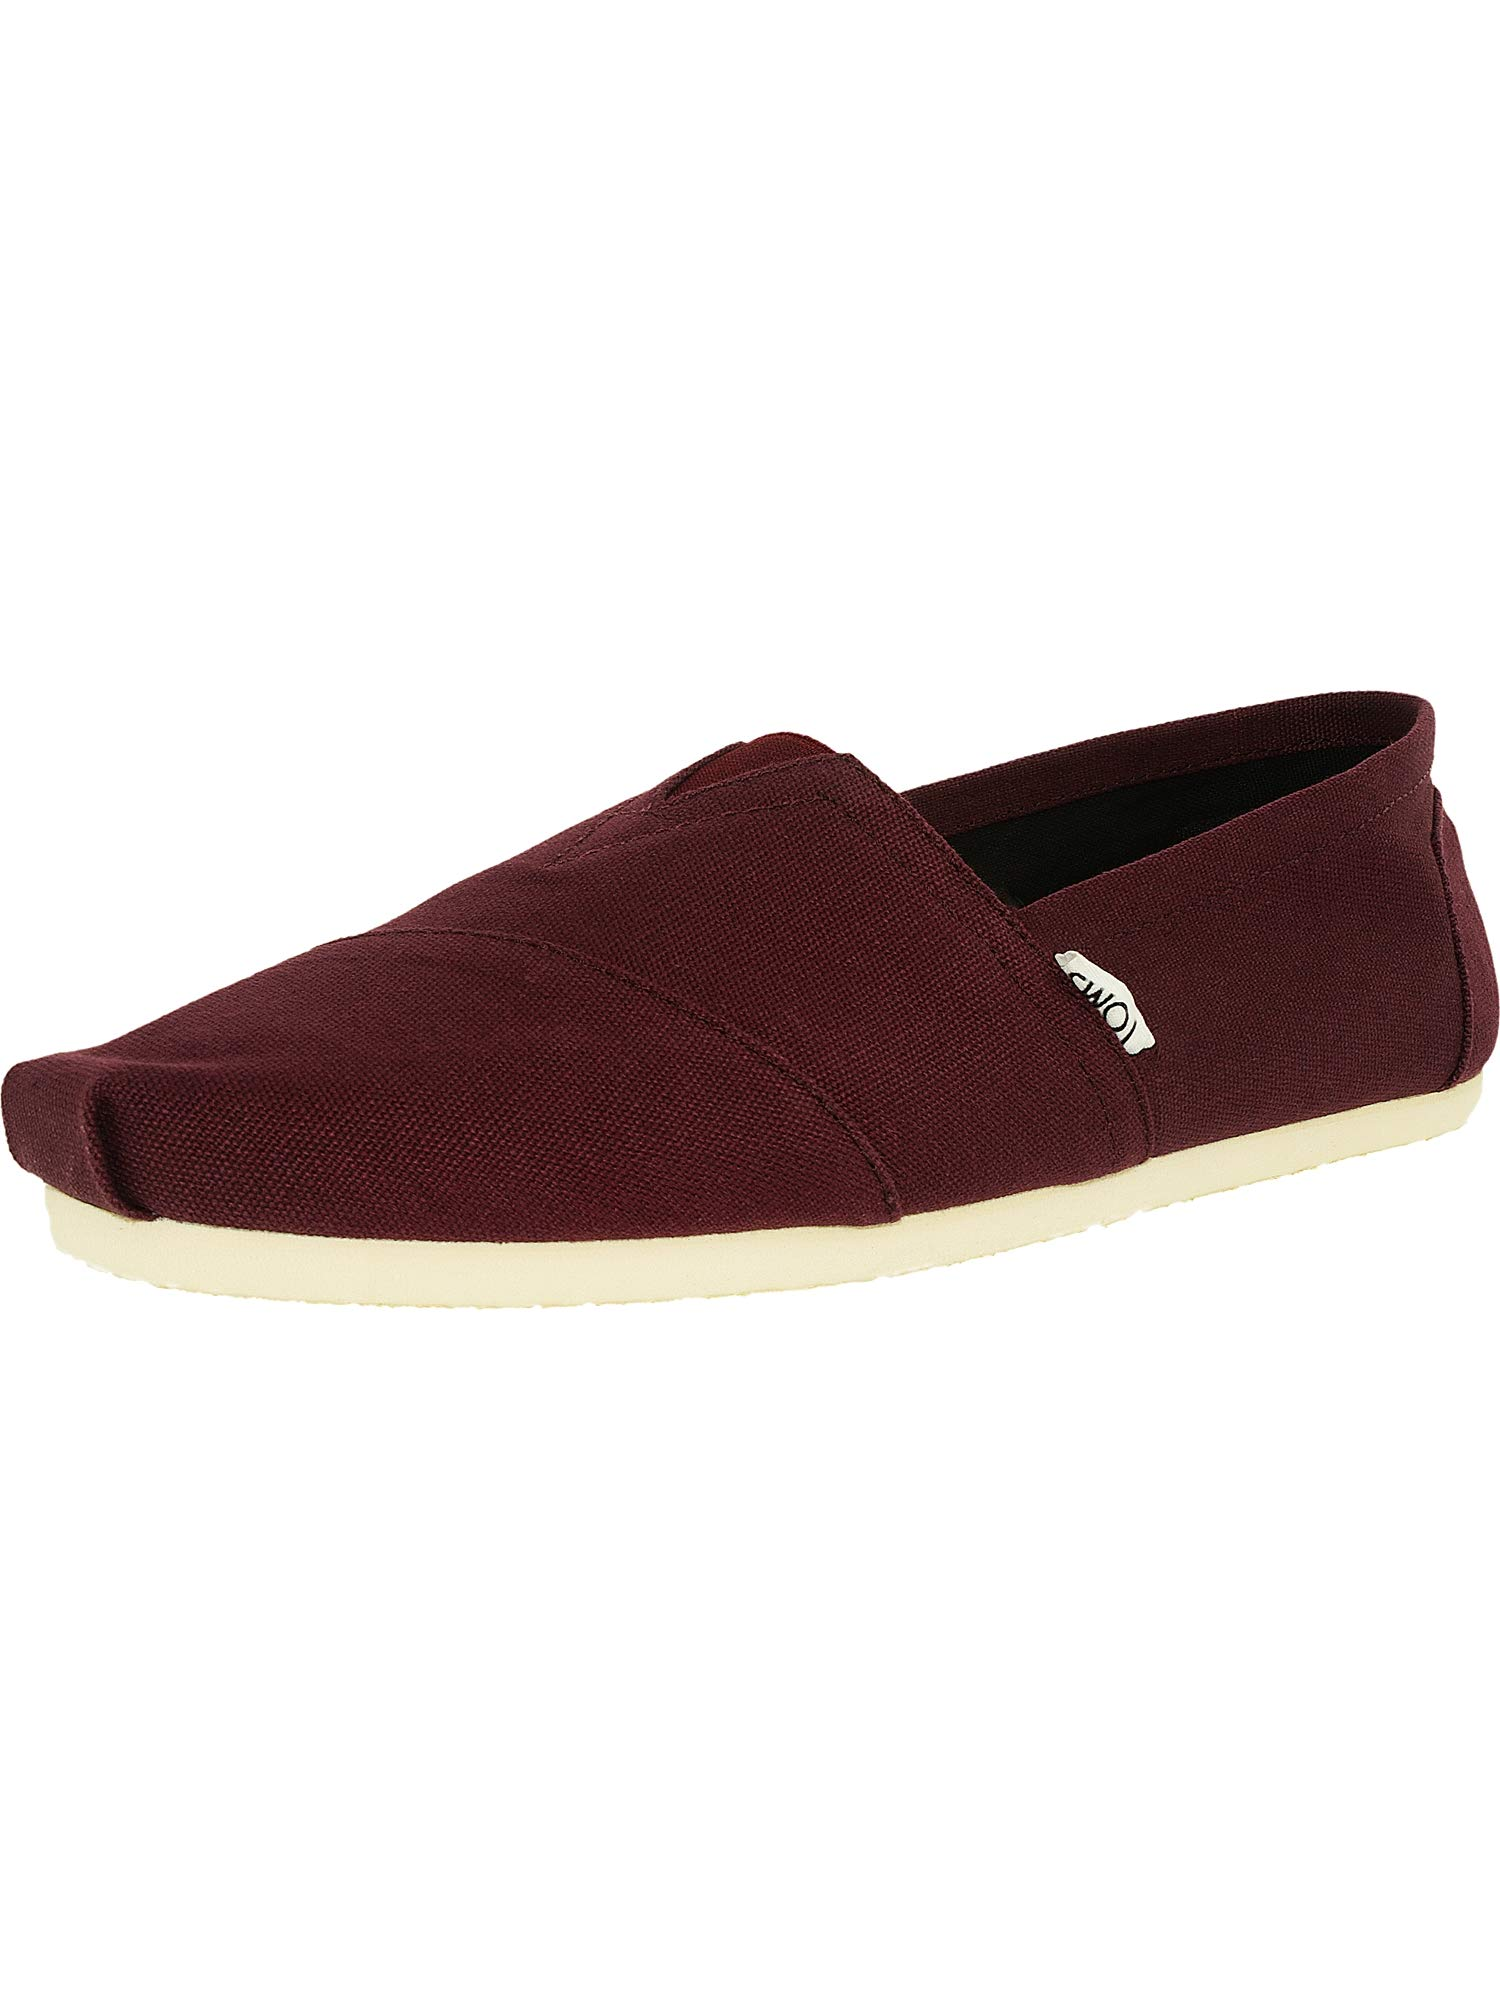 TOMS Men's Classic Canvas Slip-On, Red Mahogany Canvas - 11.5 D(M) US by TOMS (Image #1)